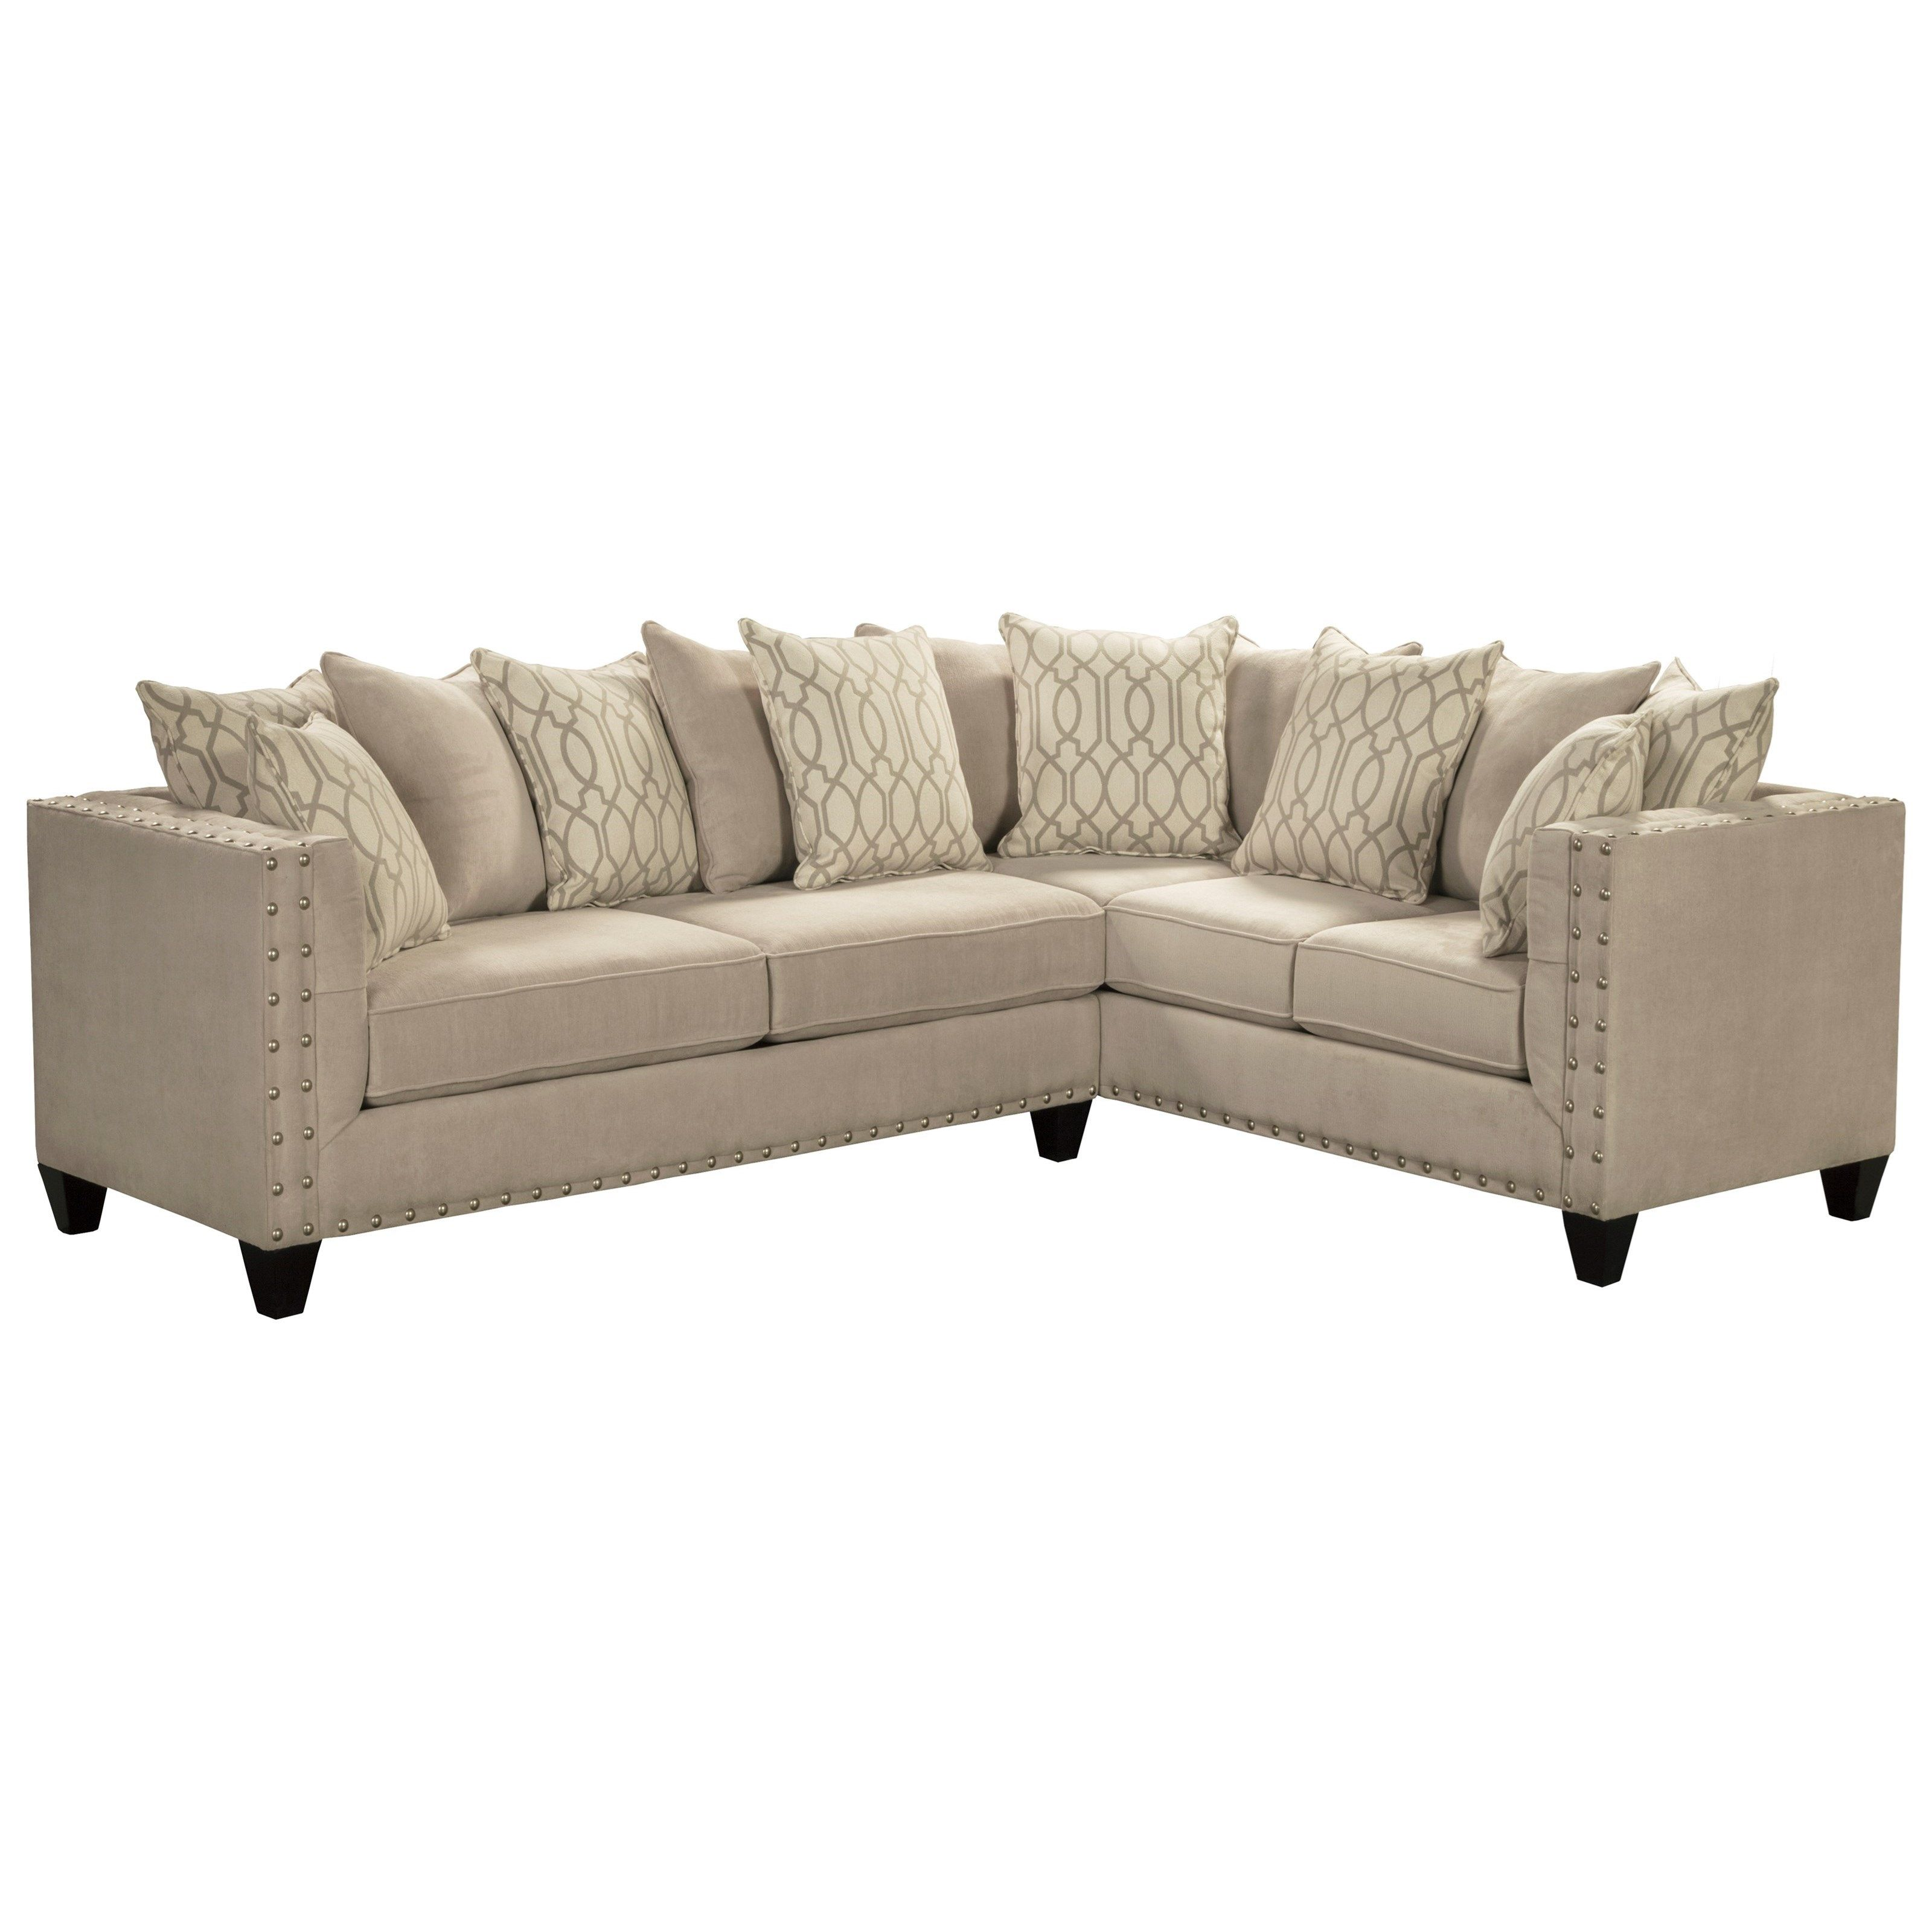 Stupendous Roxanne By Robert Michael Upholstered Sectional Sofa By Machost Co Dining Chair Design Ideas Machostcouk